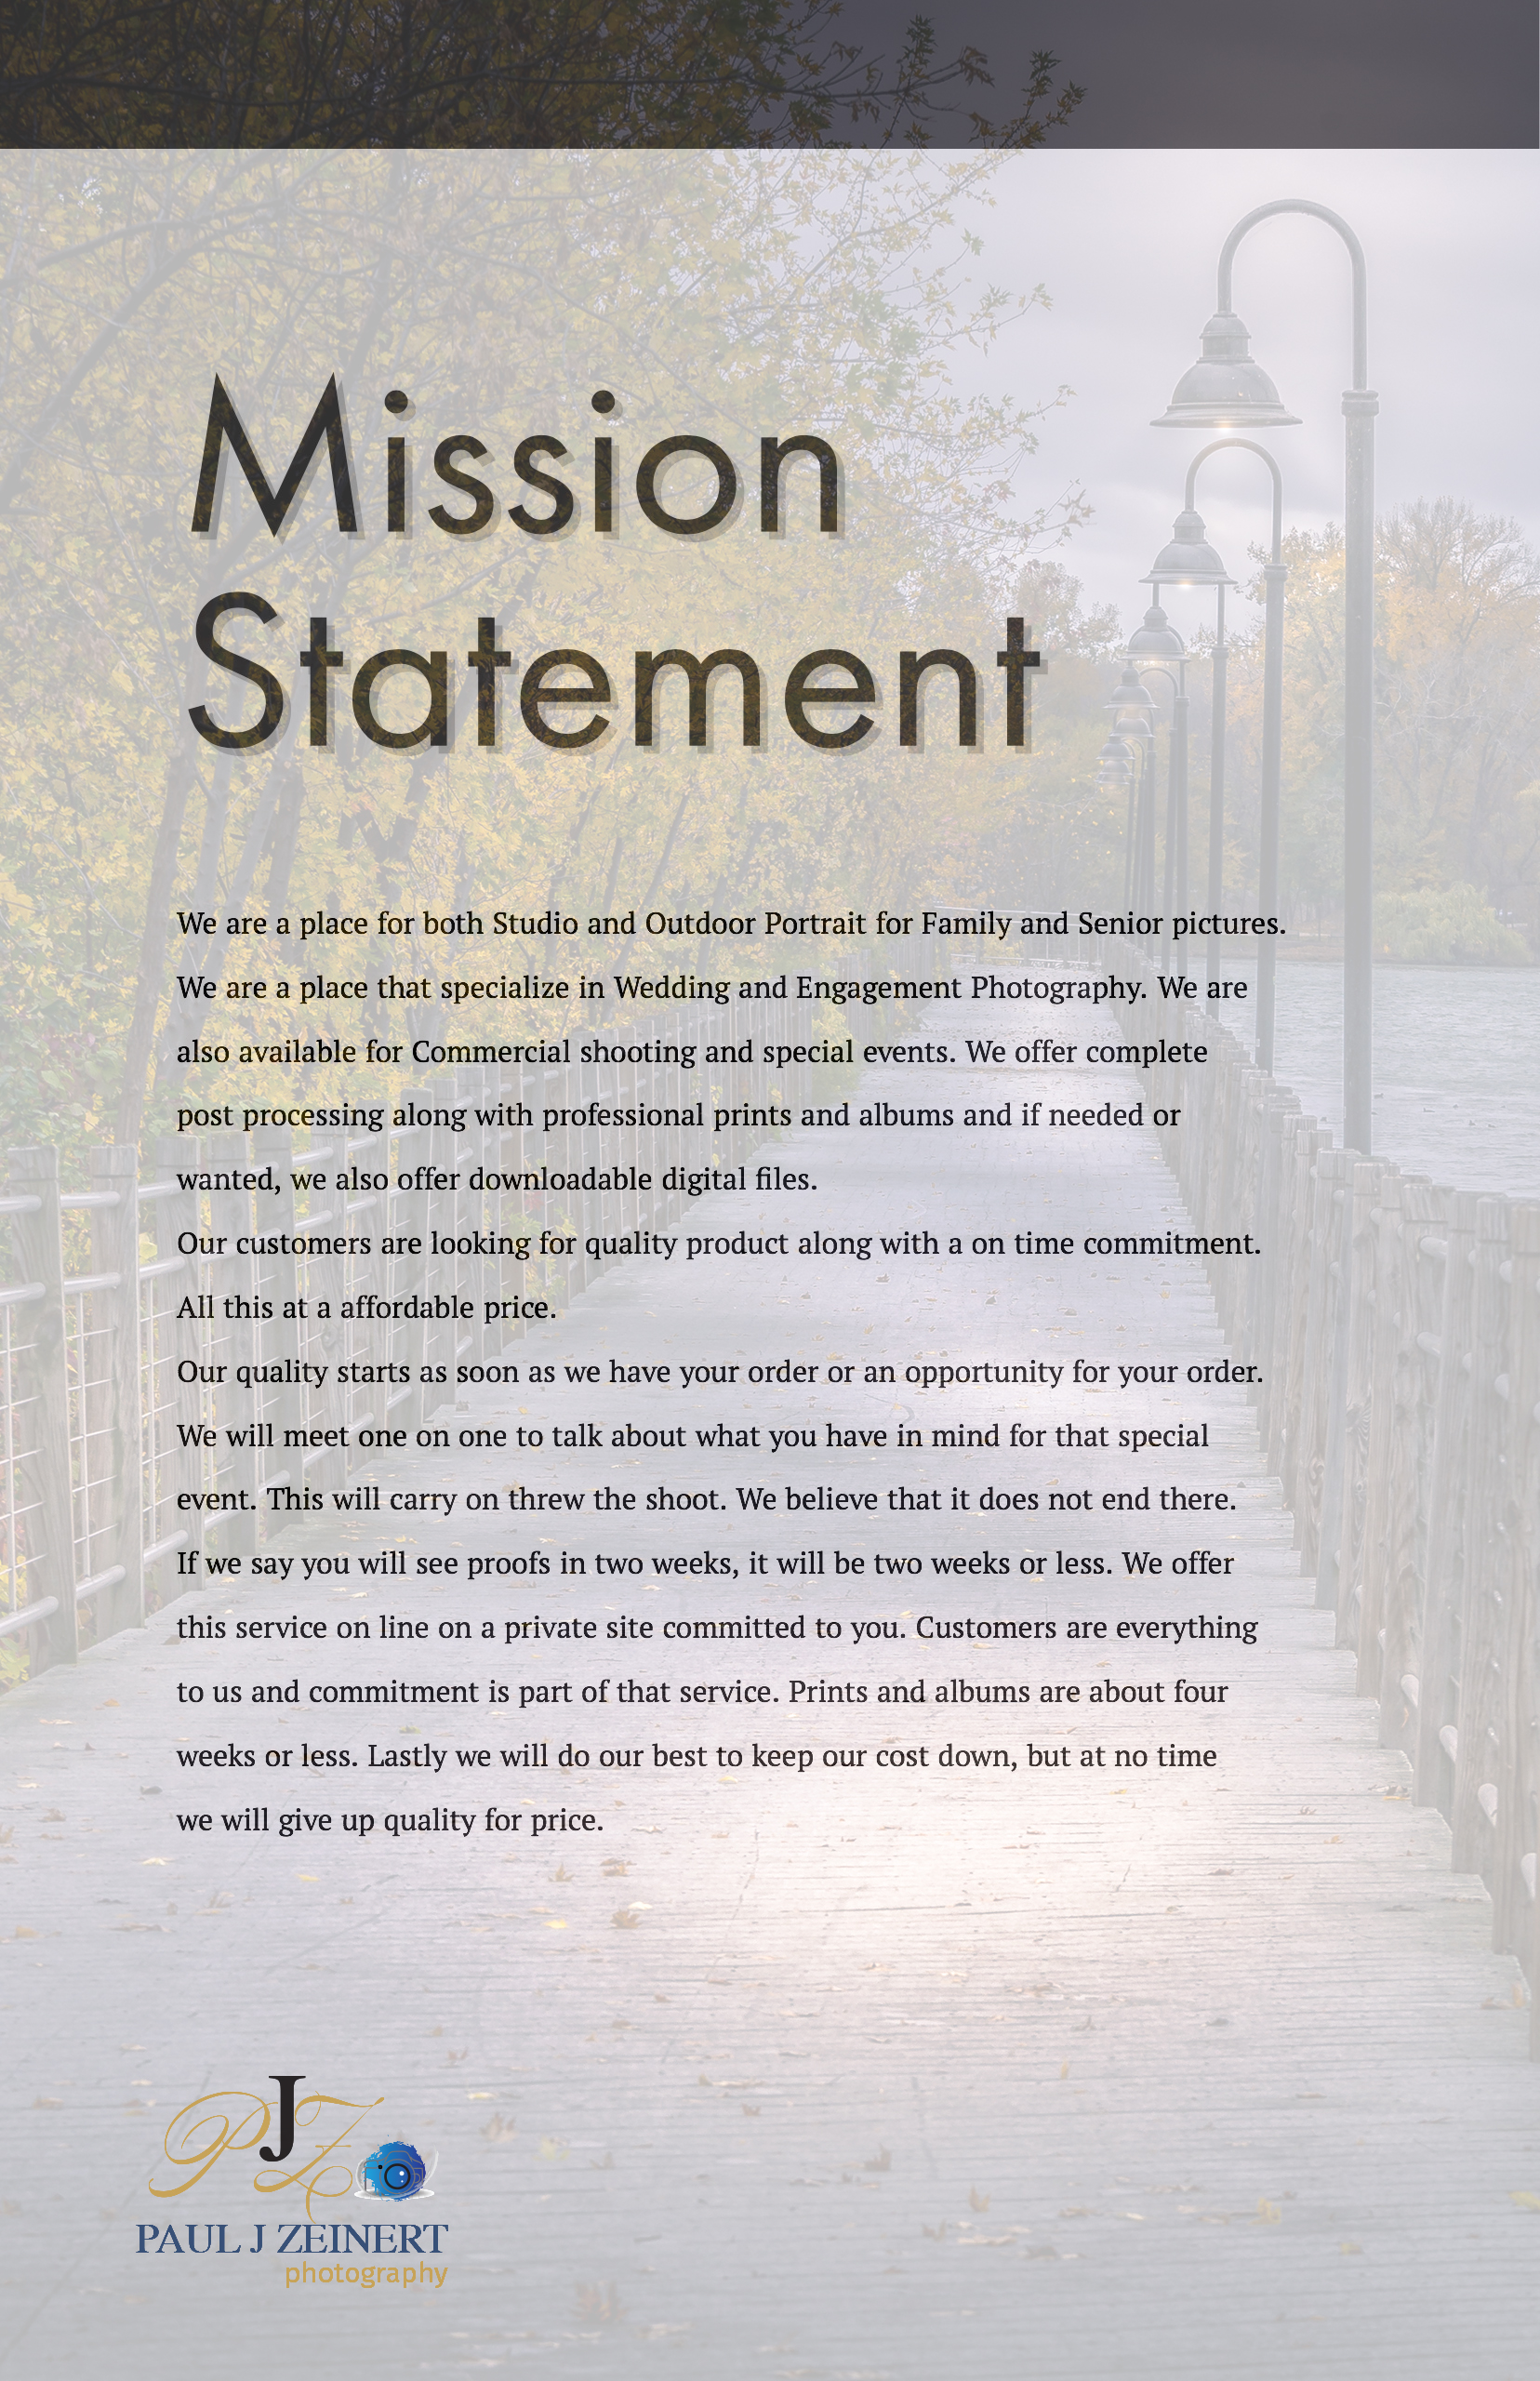 Mission Statement  New 2018.jpg